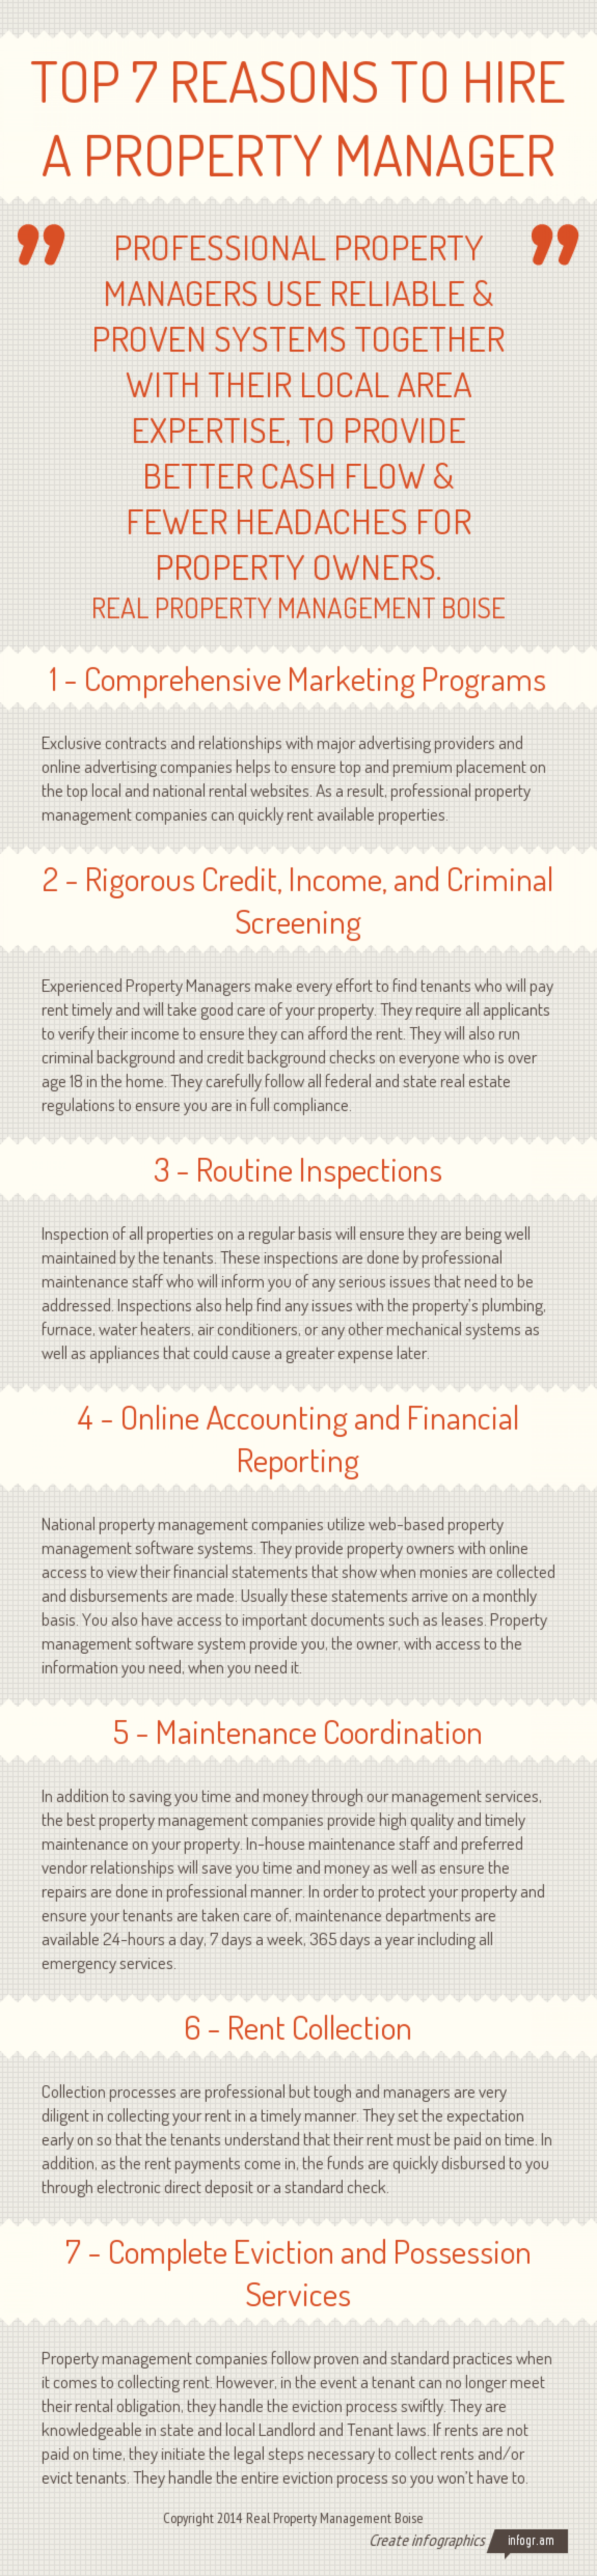 Top Reasons To Hire A Property Management Company Infographic